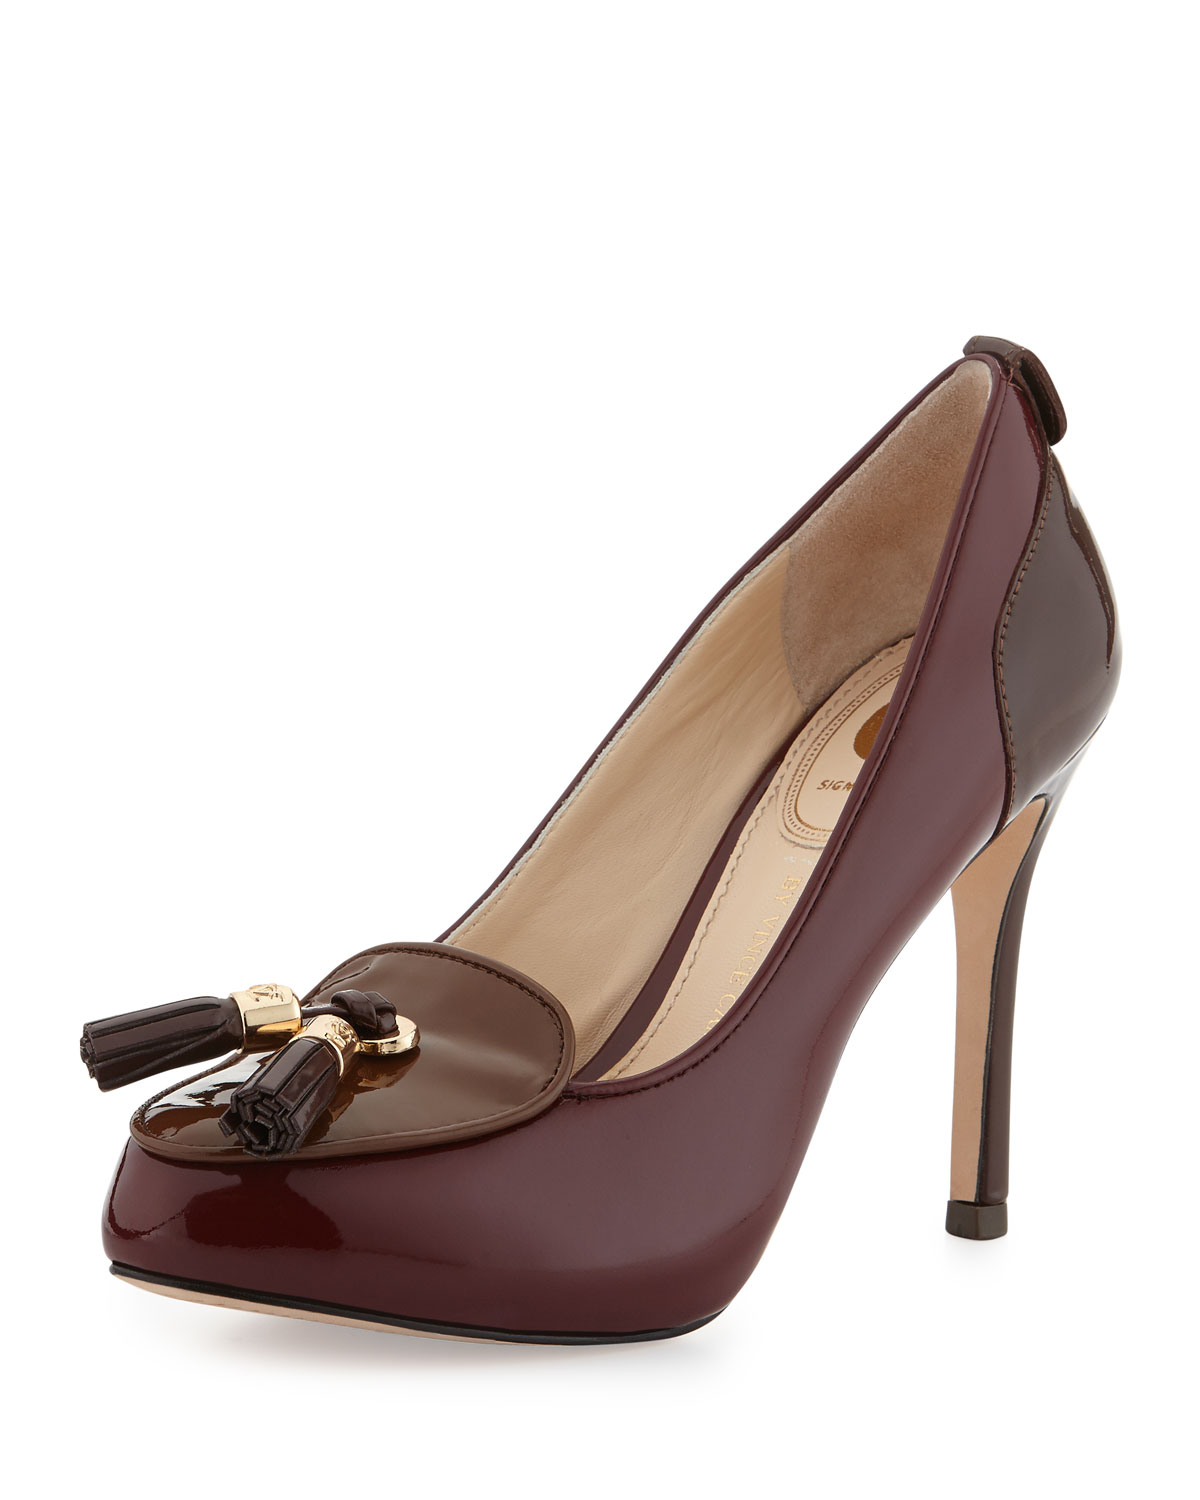 vince camuto signature pandory patent tassel pumps in